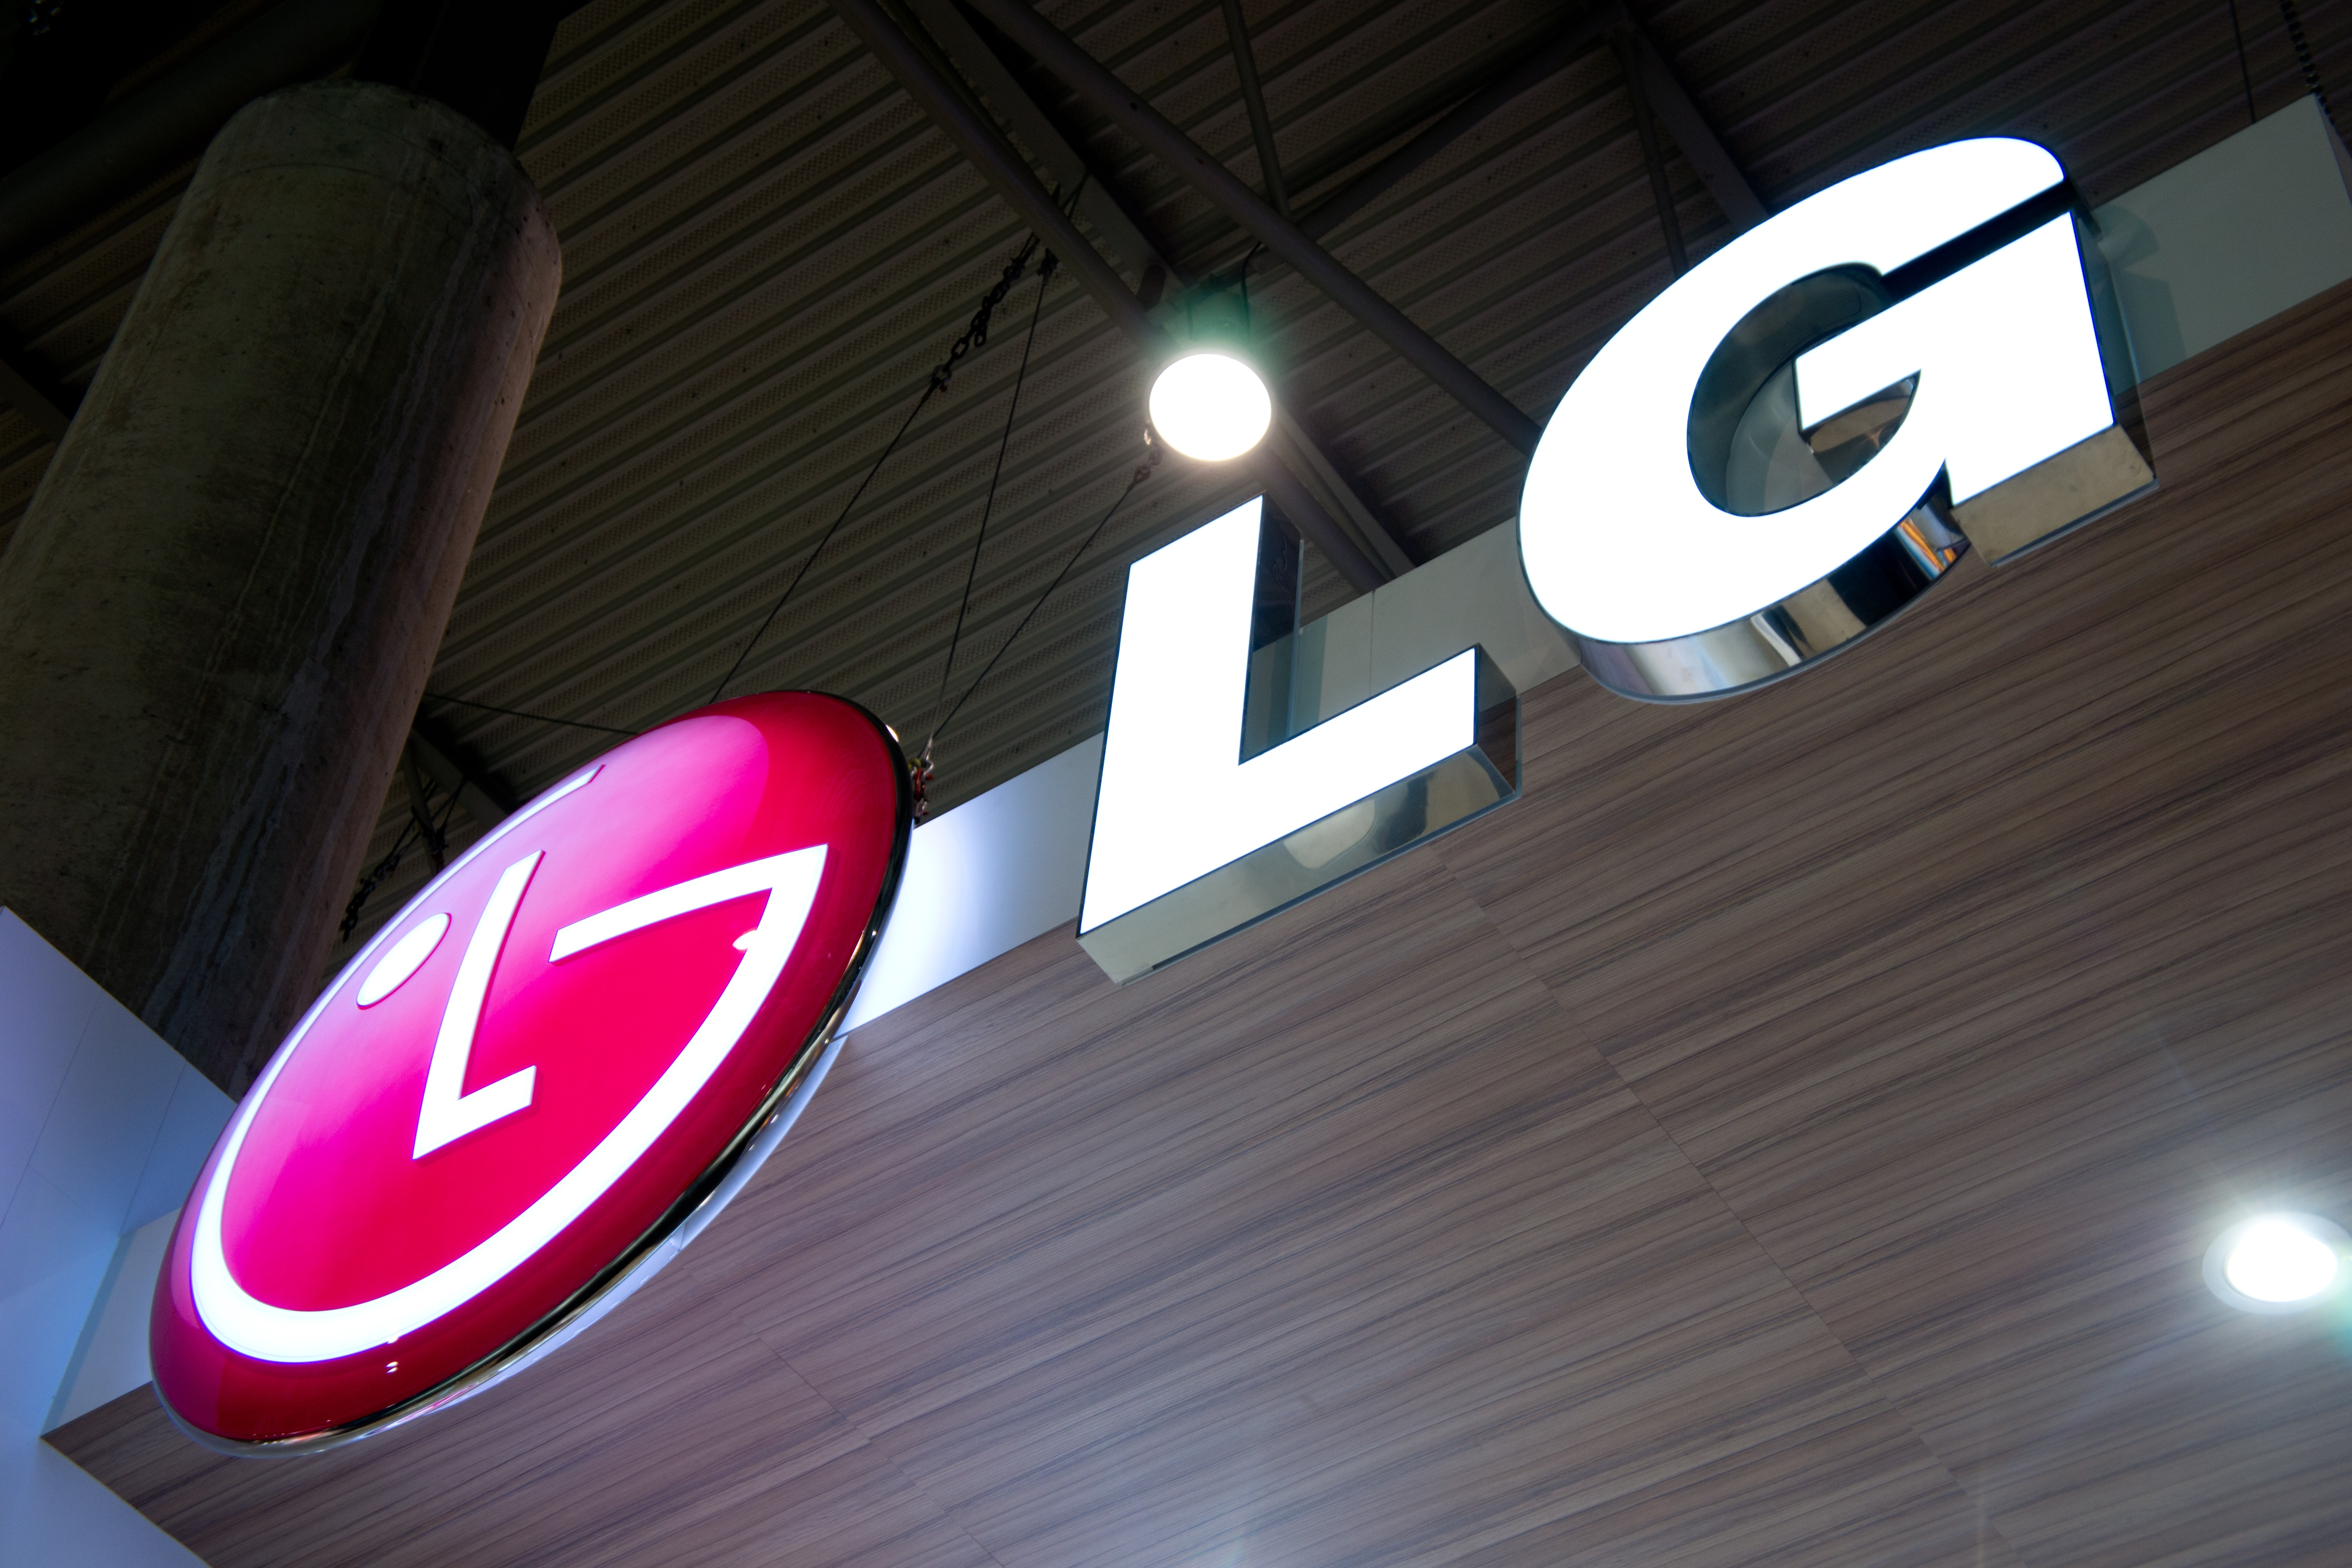 """Source: New """"Nexus 5"""" By LG Will Feature Snapdragon 808, 5.2"""" 1080p Display, 3GB RAM, 2700mAh Battery, USB-C, And More"""